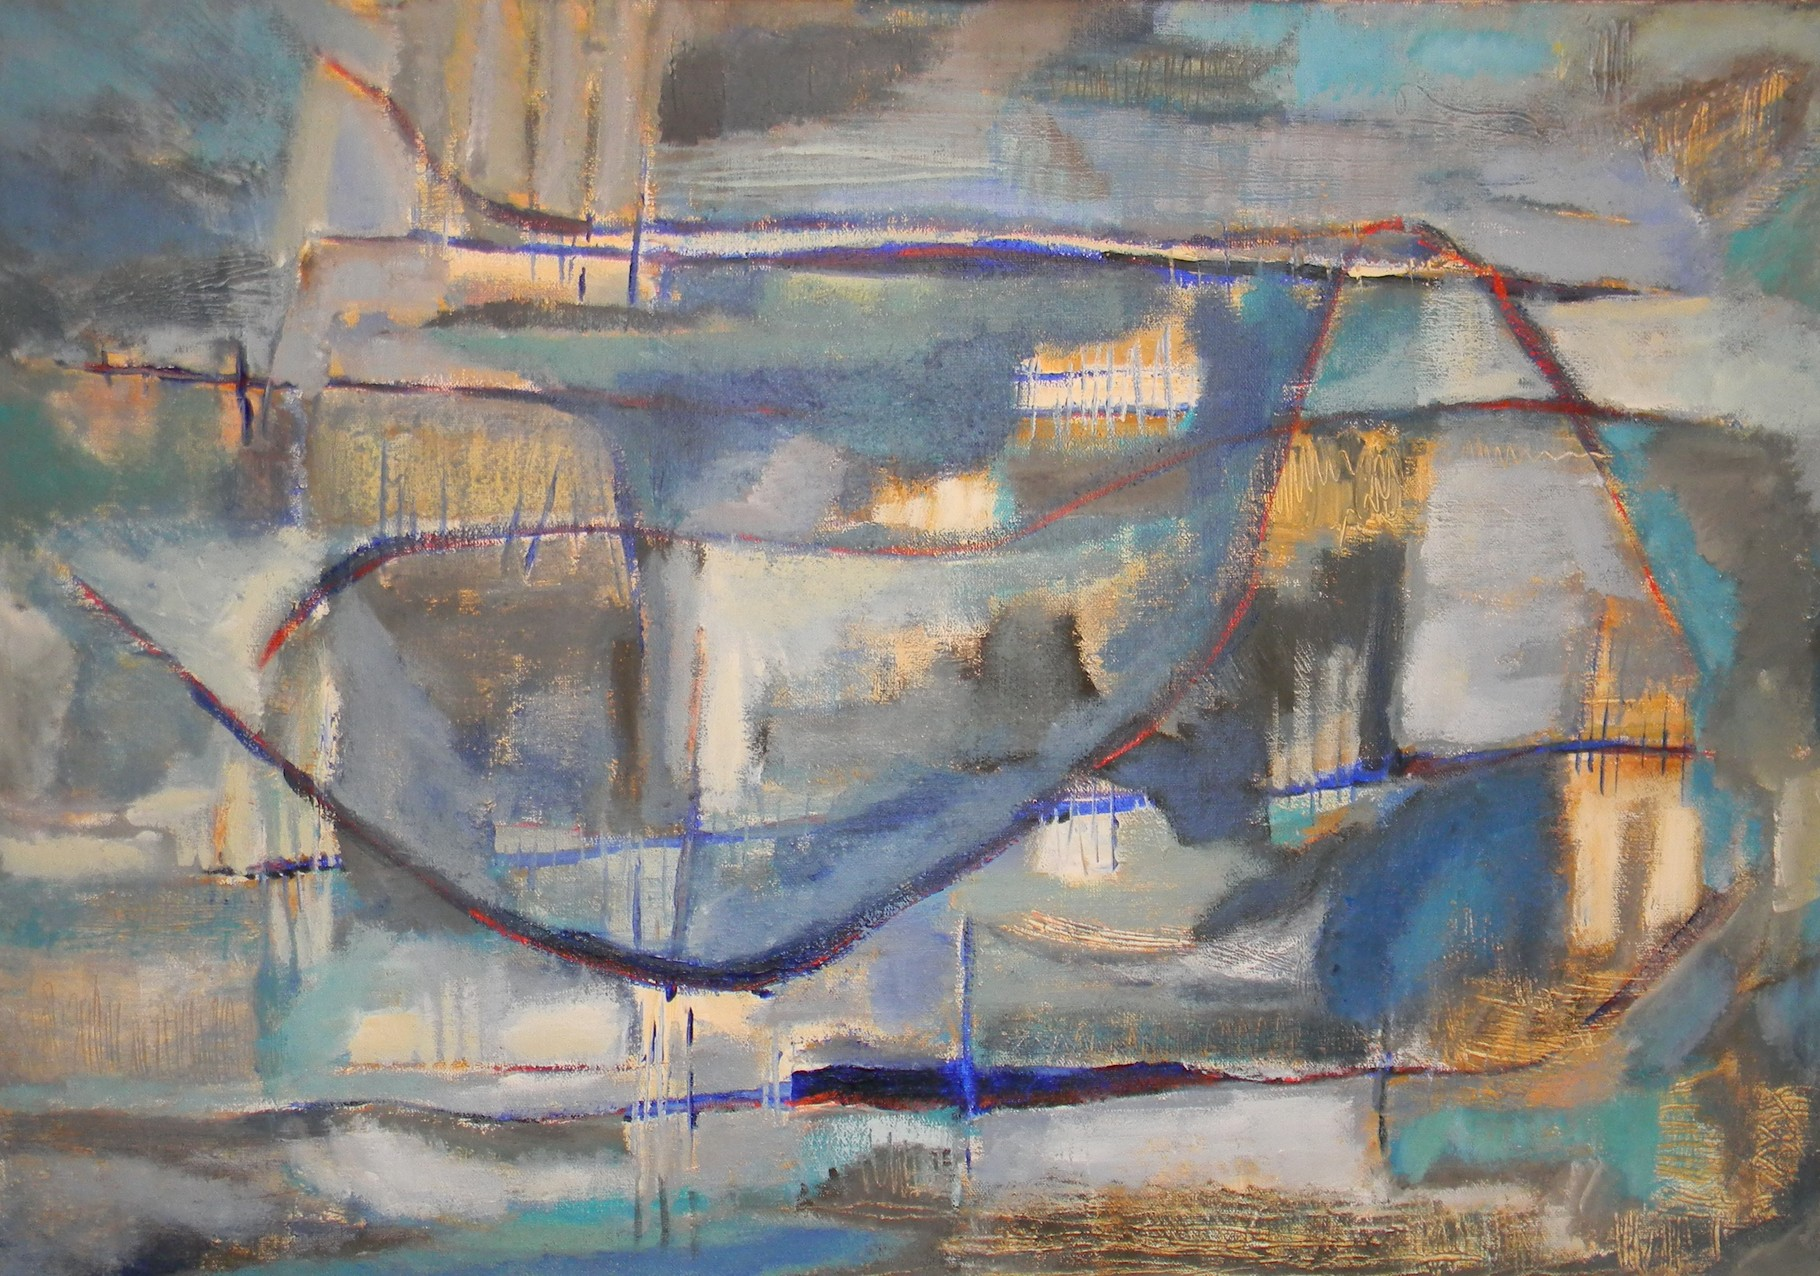 A Slight Sense of Blues, 2012